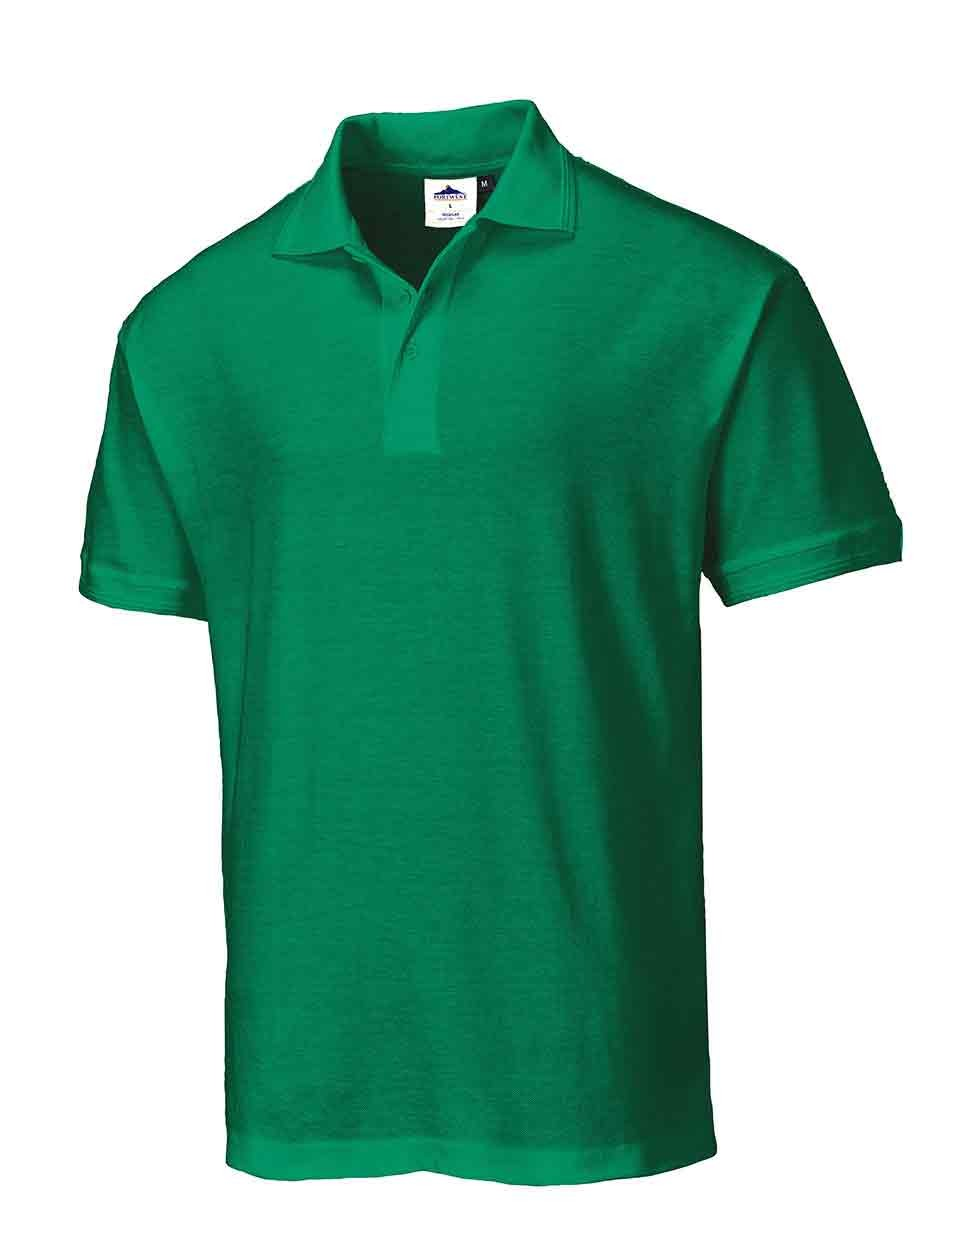 Portwest Workwear Naples Polo Shirt B210